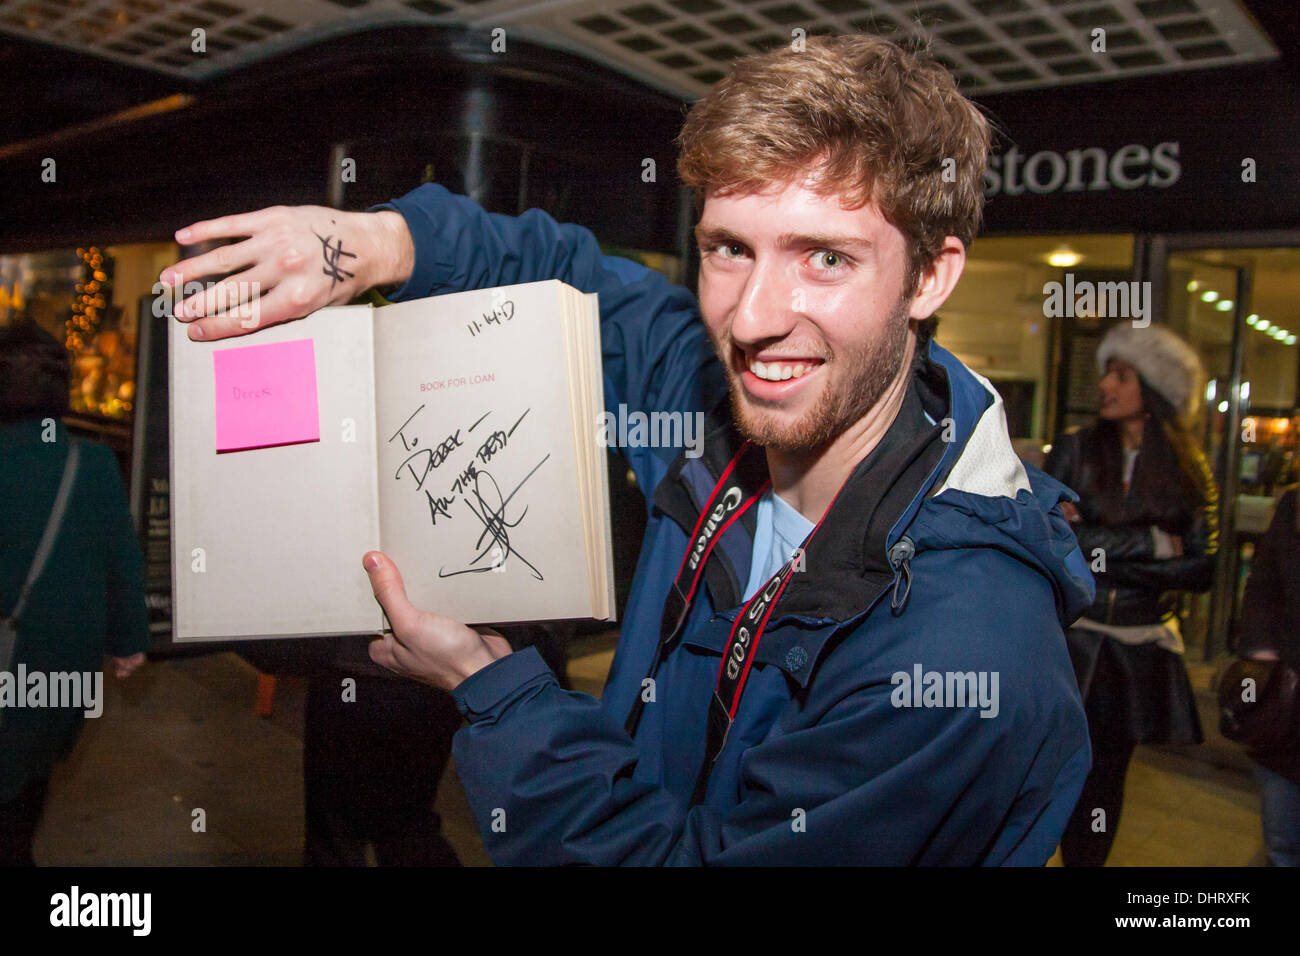 London, UK. 14th November 2013. A happy fan displays his signed copy of JJ Abrams book, Doug Dorst, outside Waterstones - Stock Image